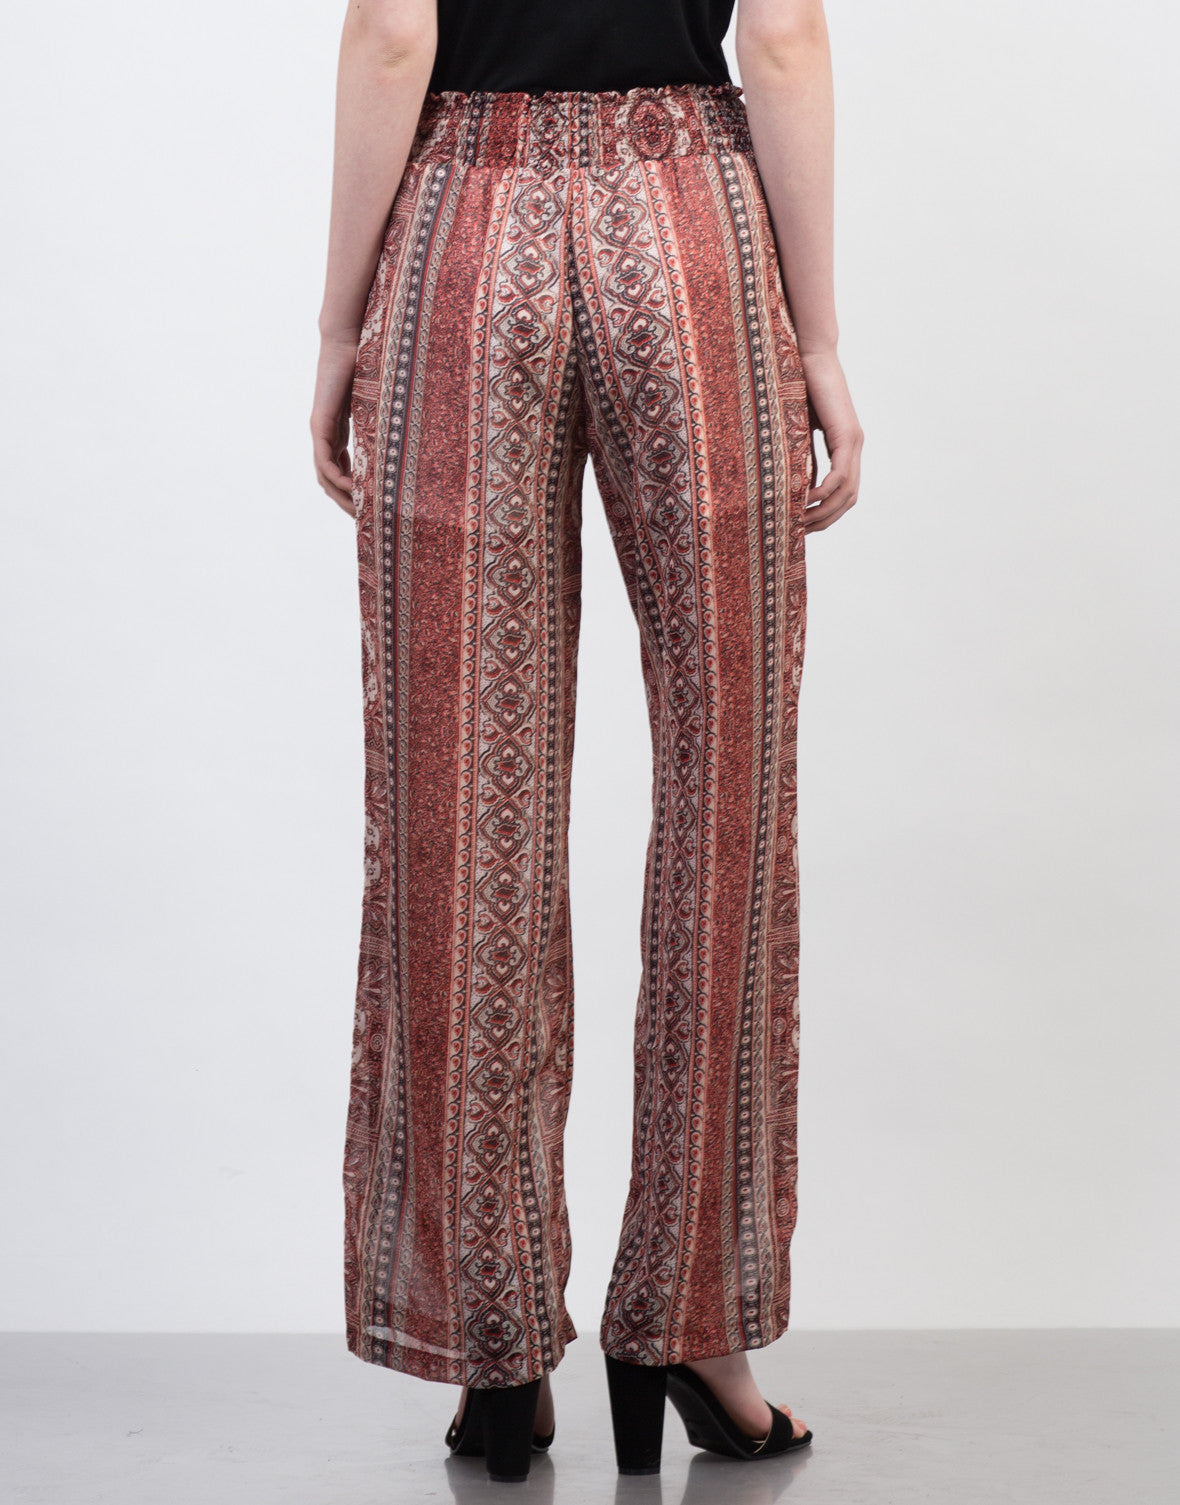 Back View of Smocked Printed Sheer Pants